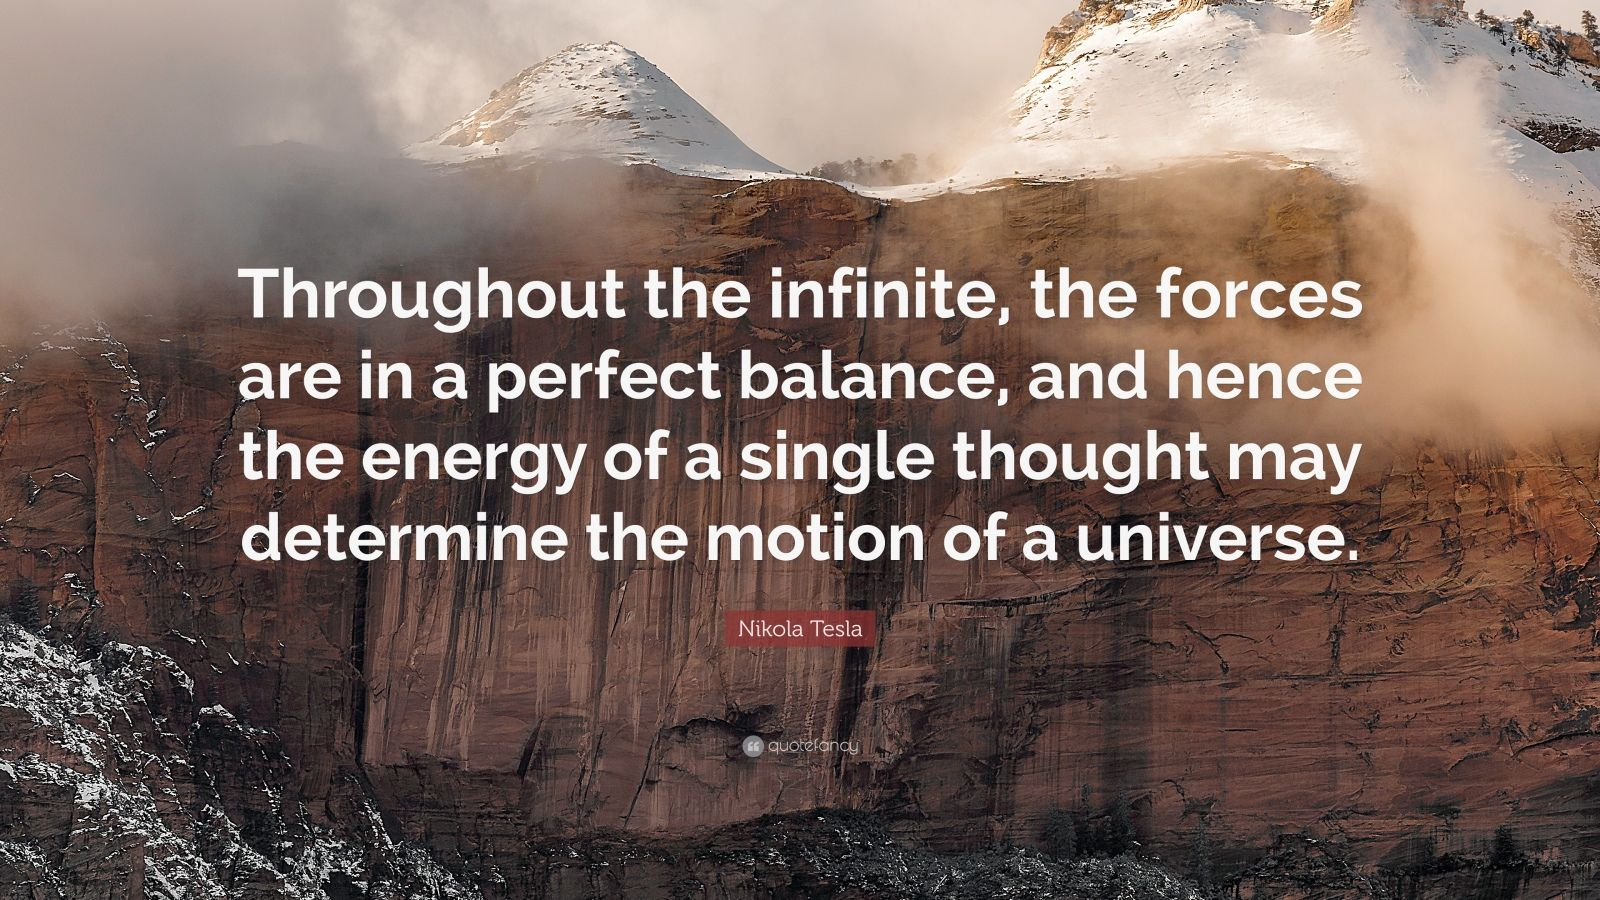 """Quotes About Balance: """"Throughout the infinite, the forces are in a perfect balance, and hence the energy of a single thought may determine the motion of a universe."""" — Nikola Tesla"""